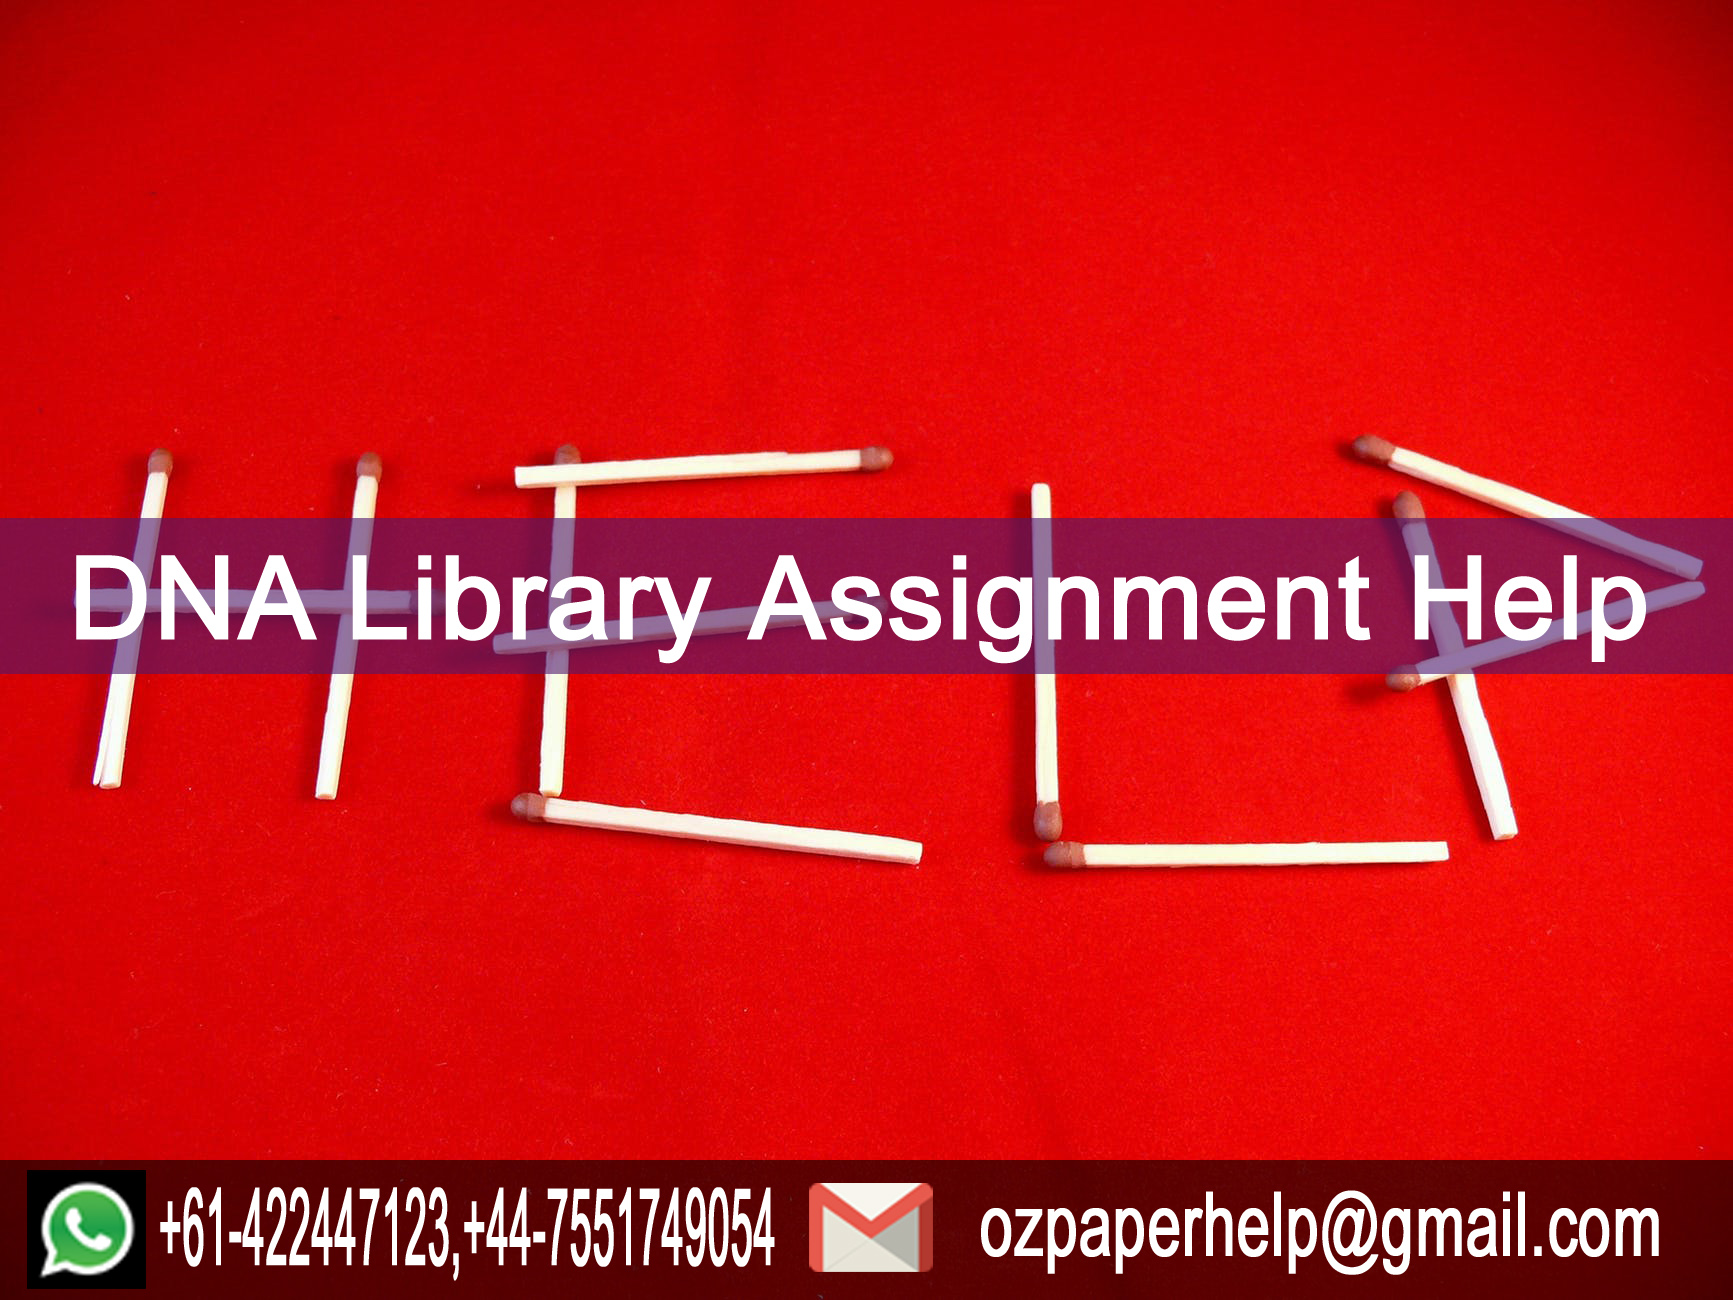 DNA Library Assignment Help